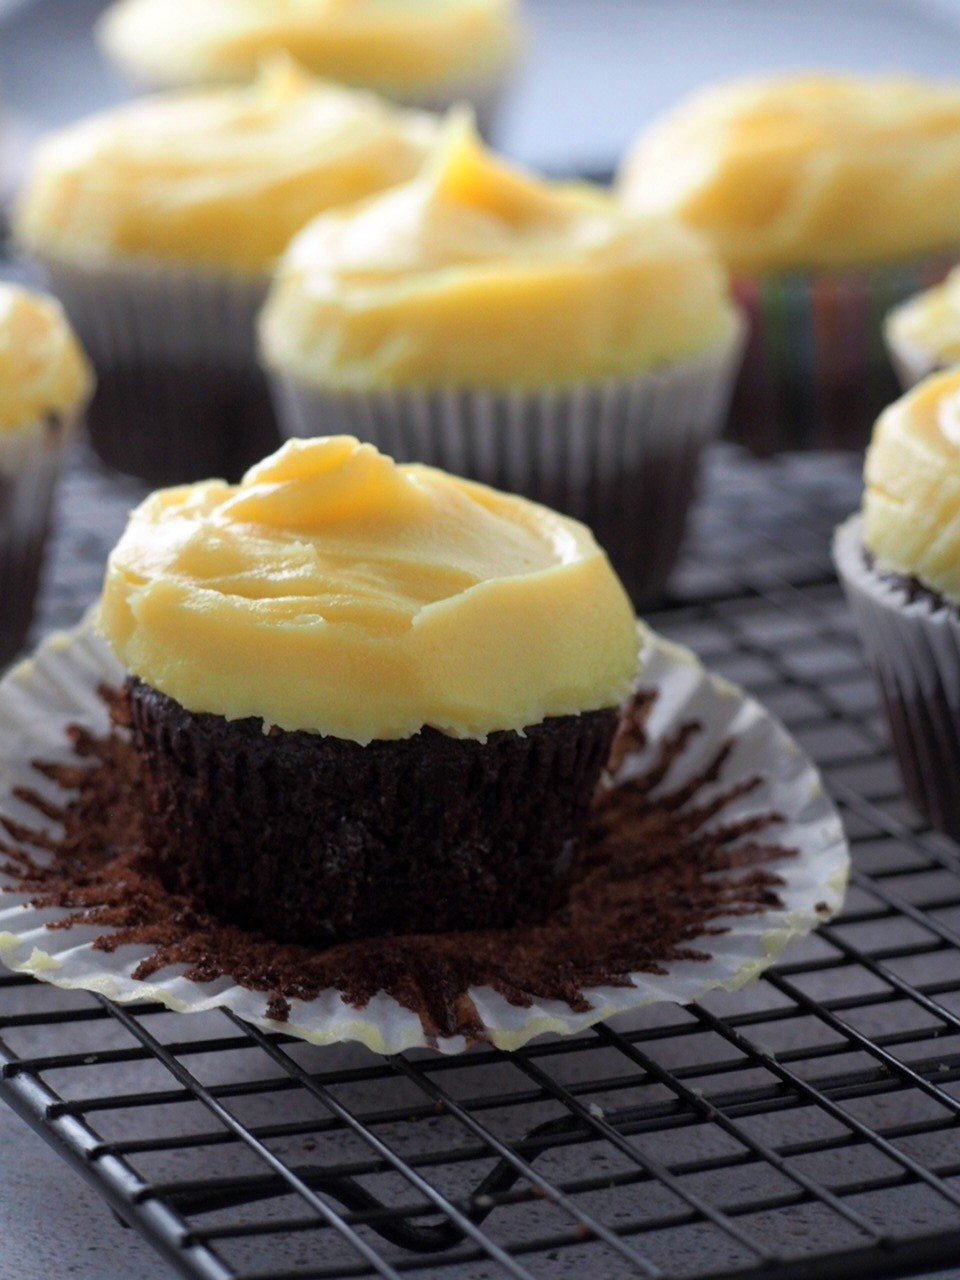 Choco-yema cupcake shot with the paper liner peeled, showing the crumbs.